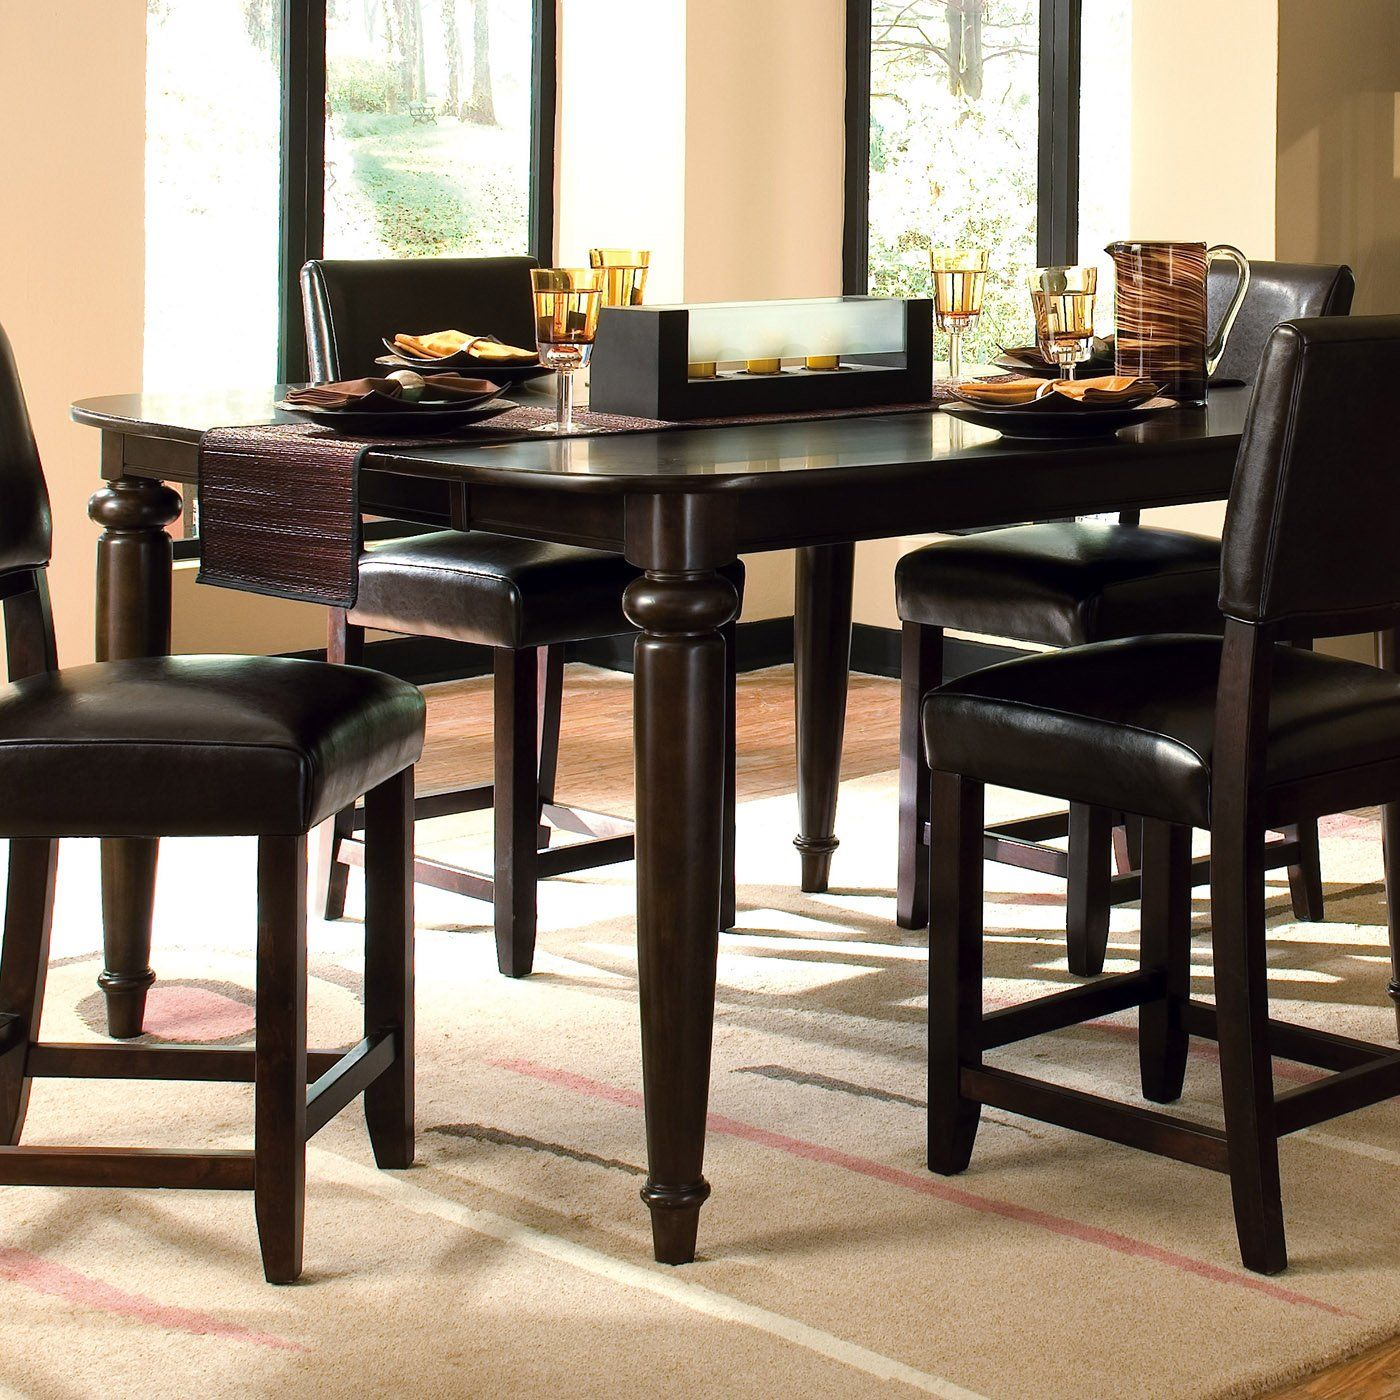 Kincaid Furniture 46 058 Somerset Tall Dining Table Espresso